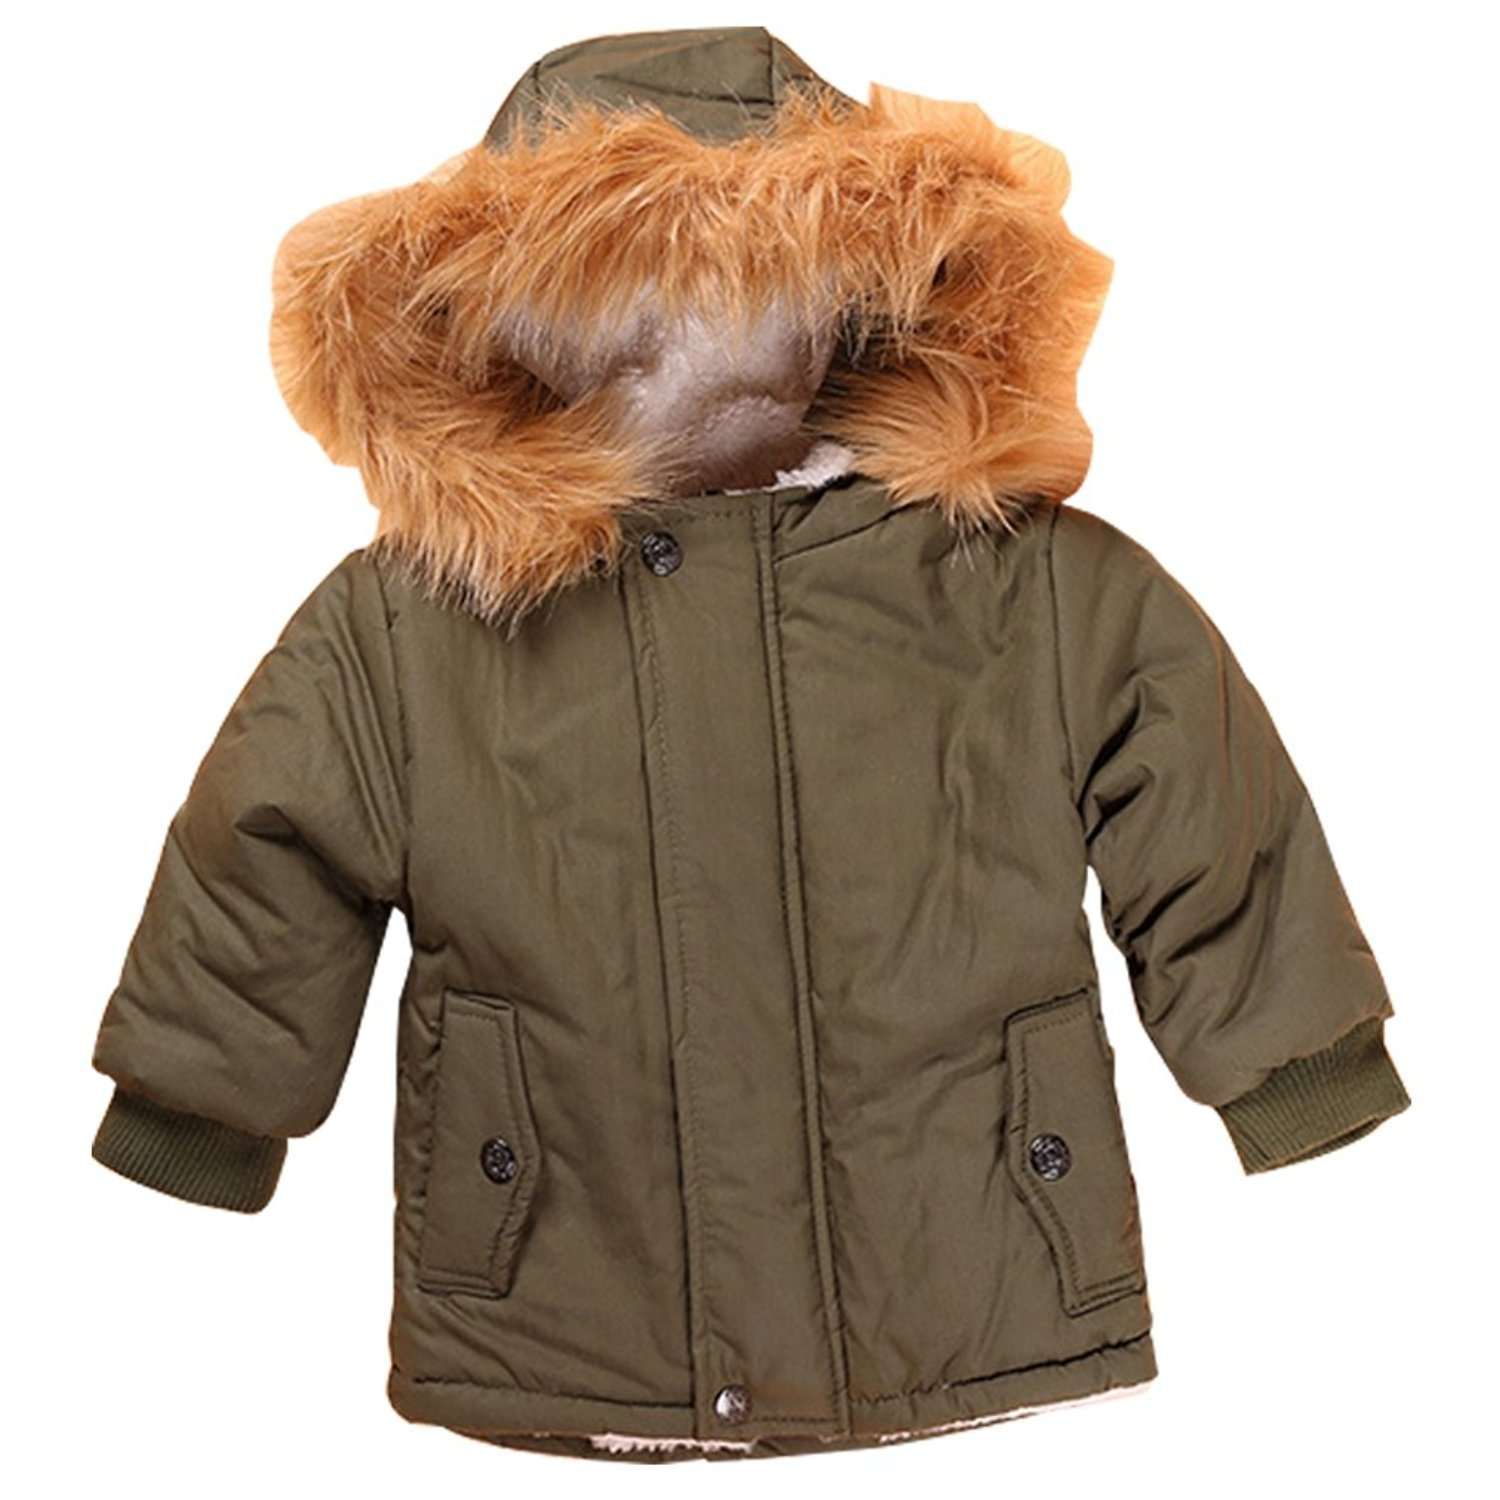 Baby Boy s' Winter Warm Coat Hoodie Parka Outerwear Jacket (18-24Months, Army Green) by VIVIQ (Image #1)